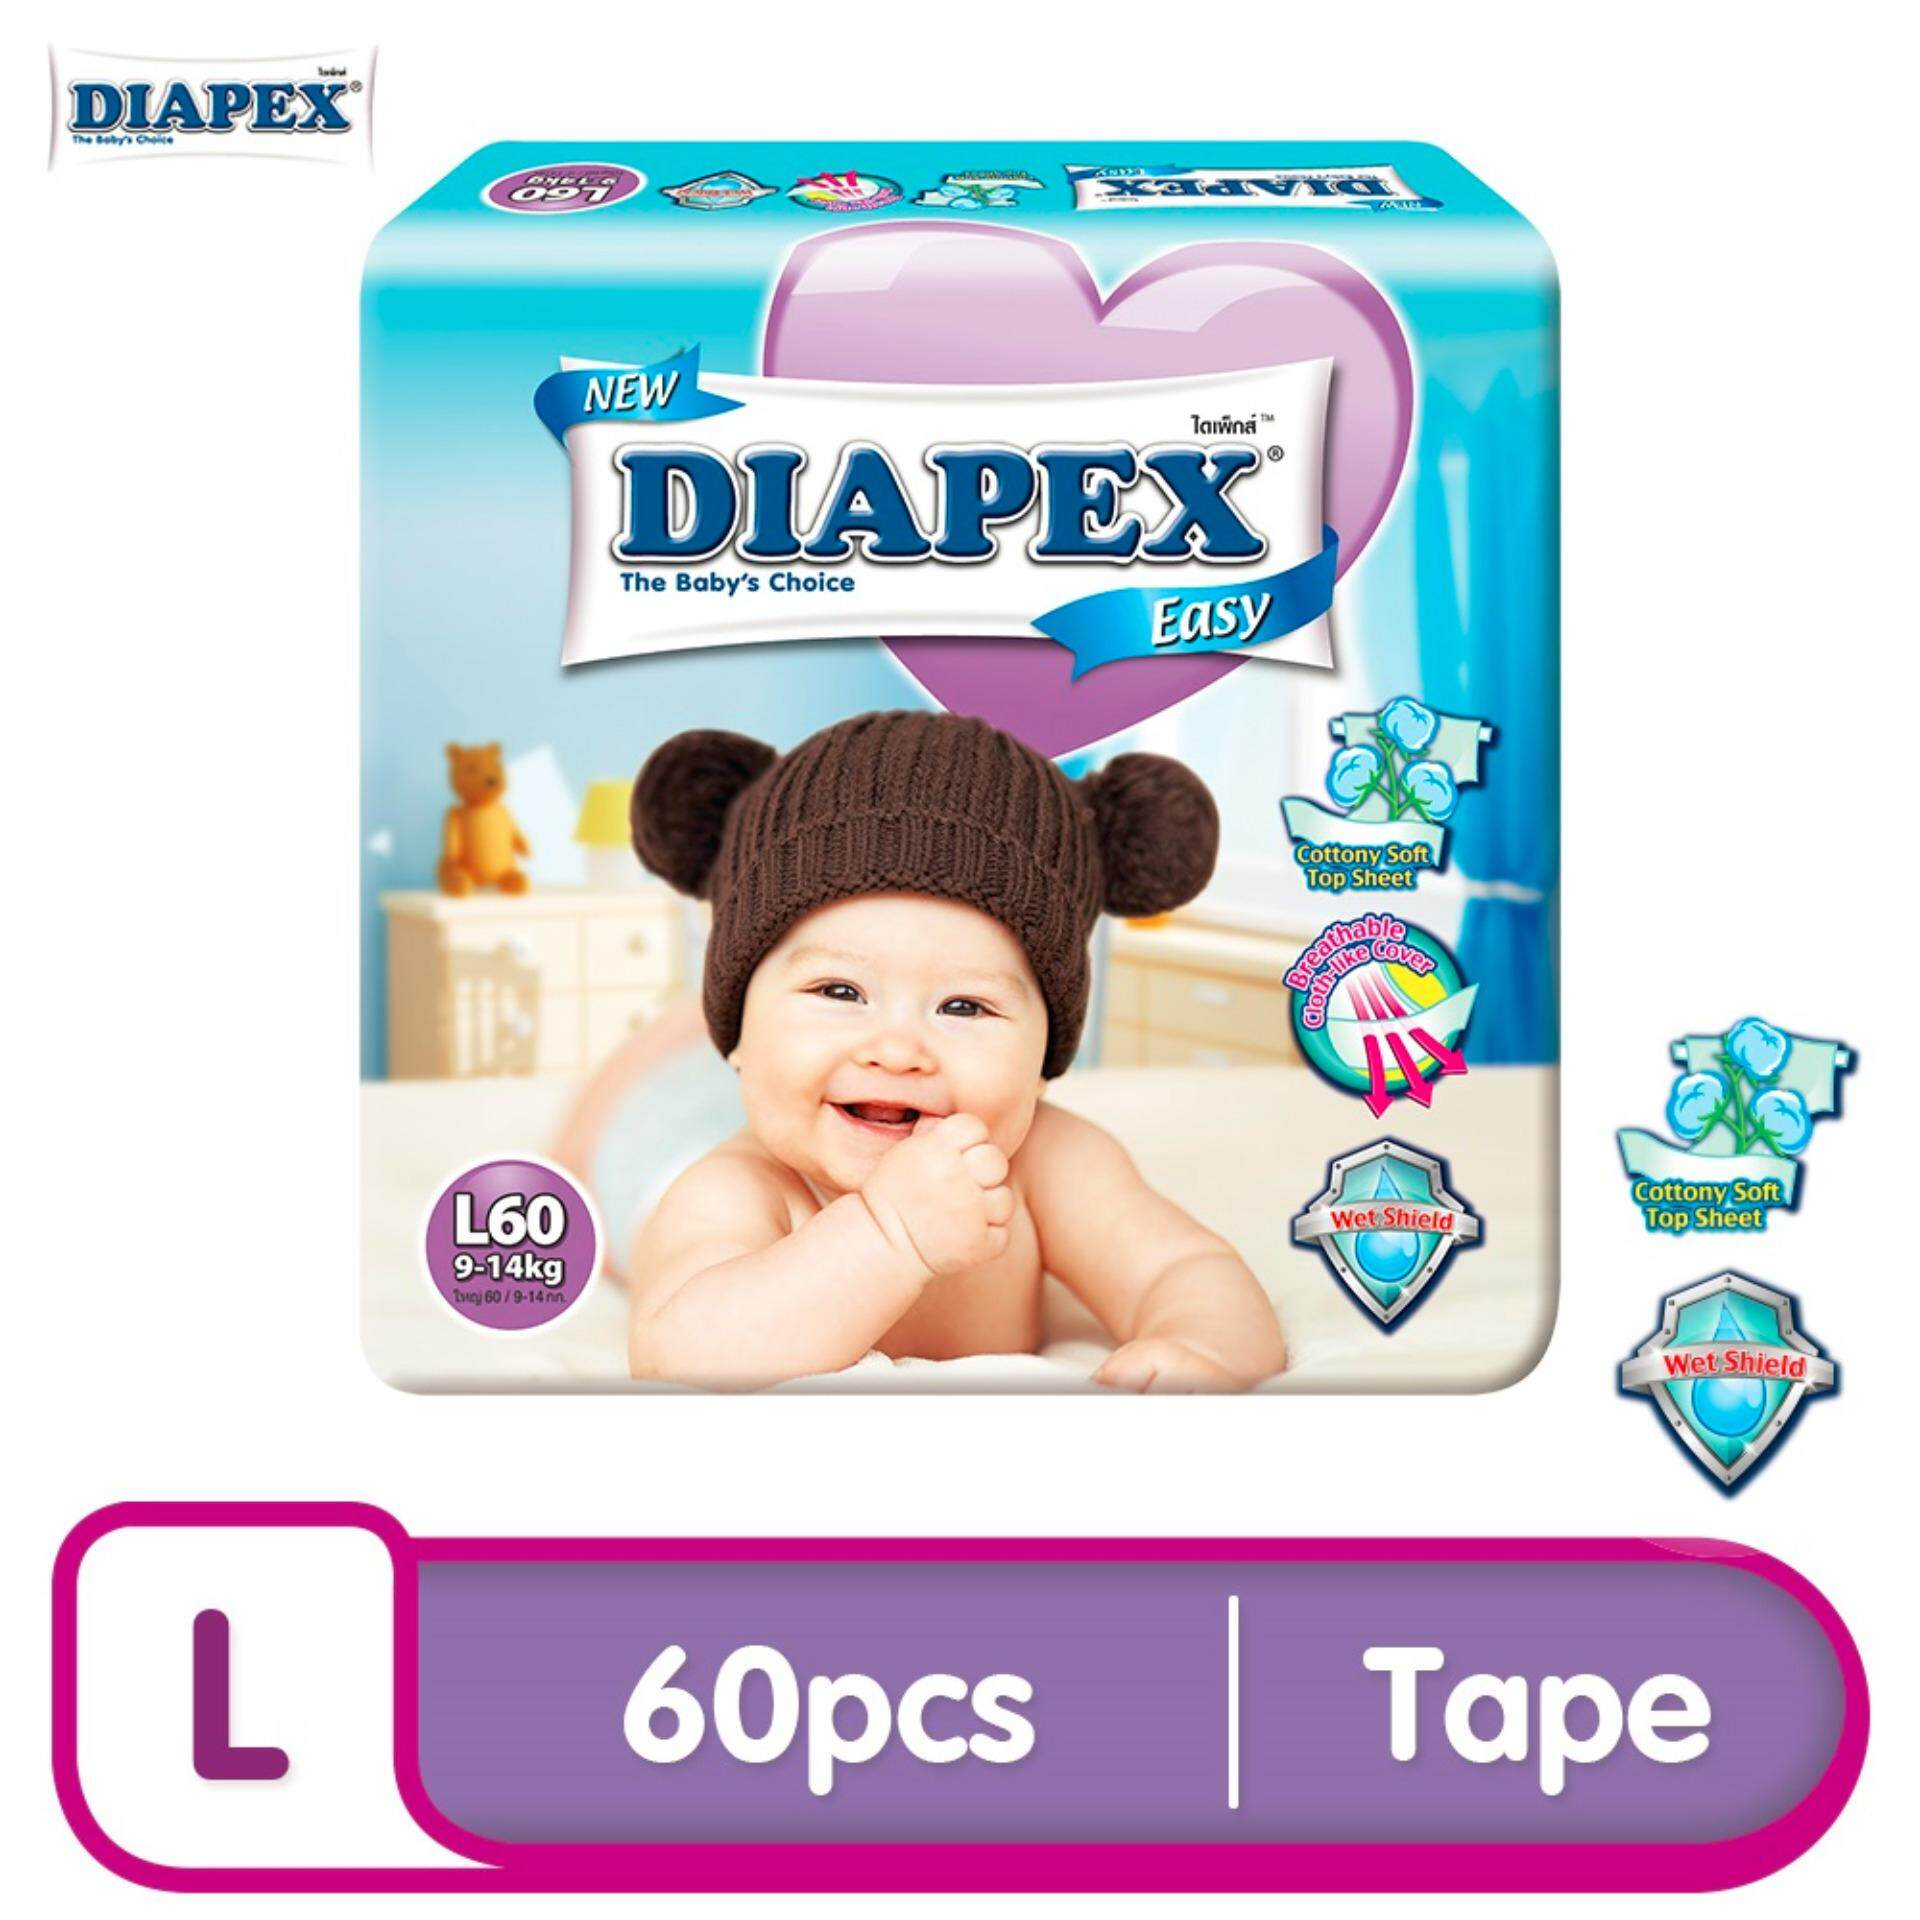 Disposable Diapers Buy At Best Price In Merries Baby New Born 24 S Diapex Easy Wonder Tape Mega L60 X 3pkts